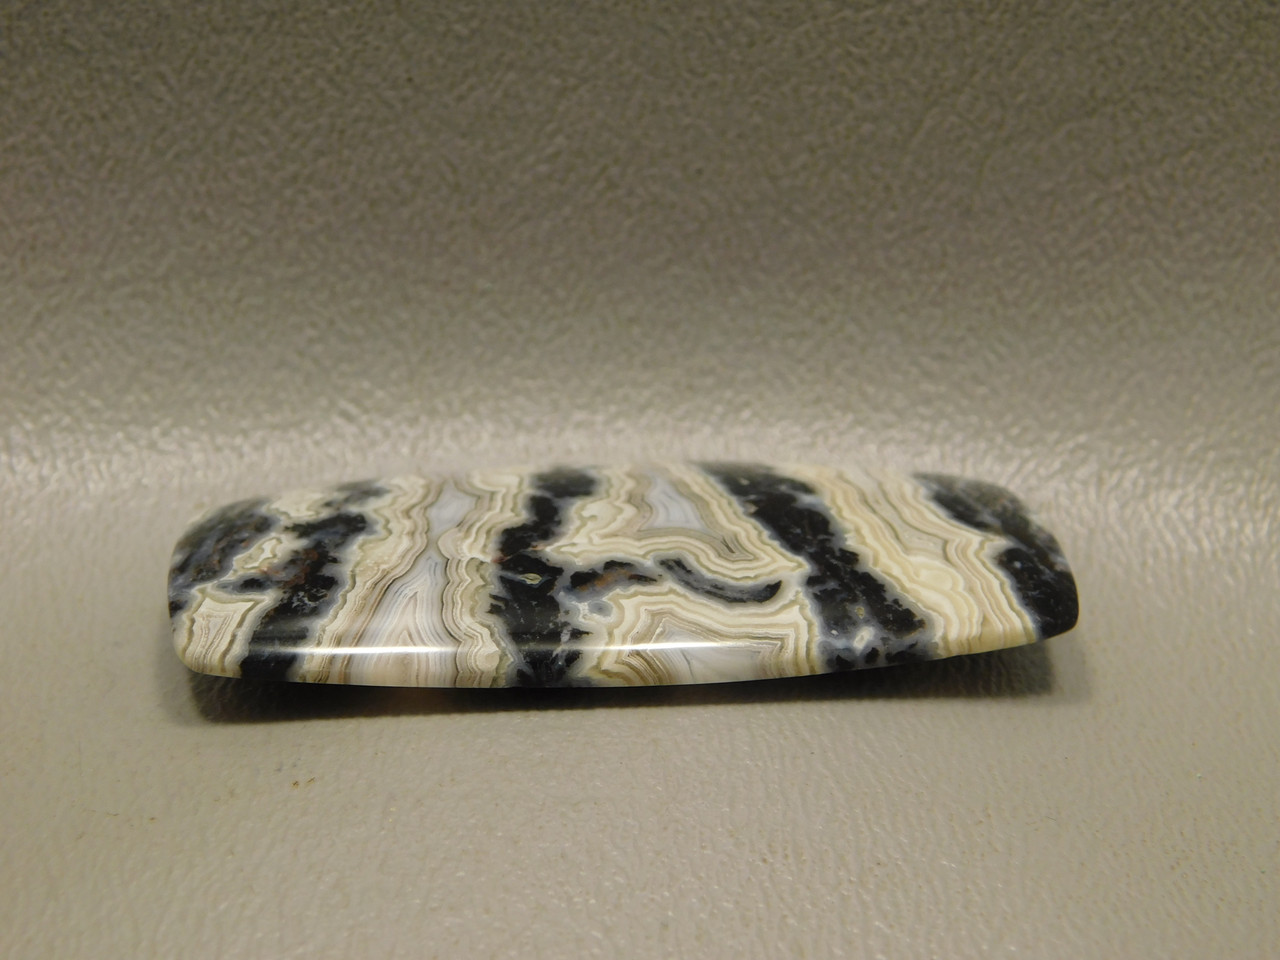 Cabochon Crazy Lace Agate Barrel Shaped Black and White Stone #22